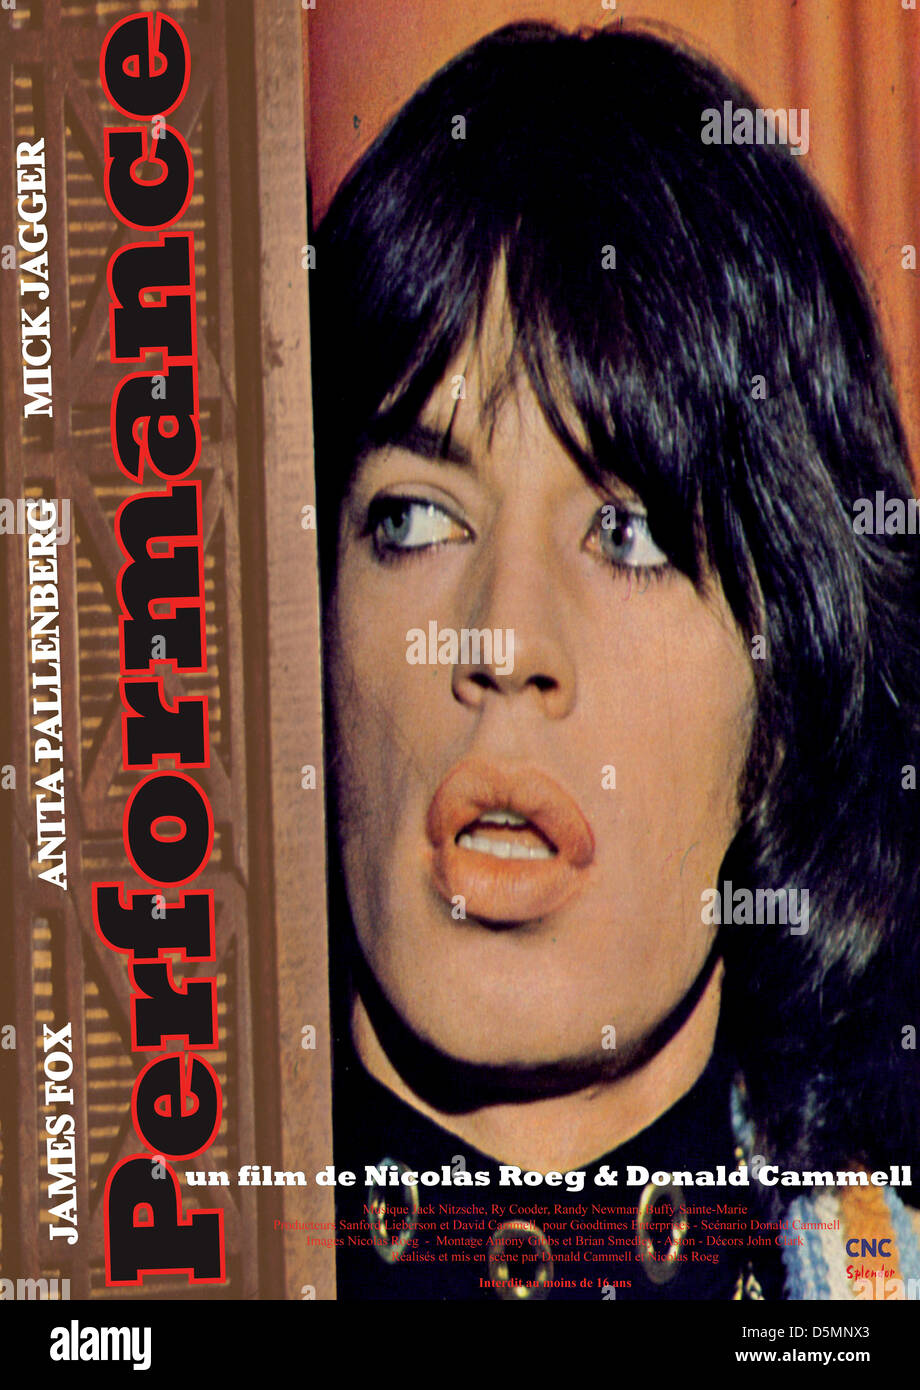 MICK JAGGER POSTER PERFORMANCE (1970) - Stock Image